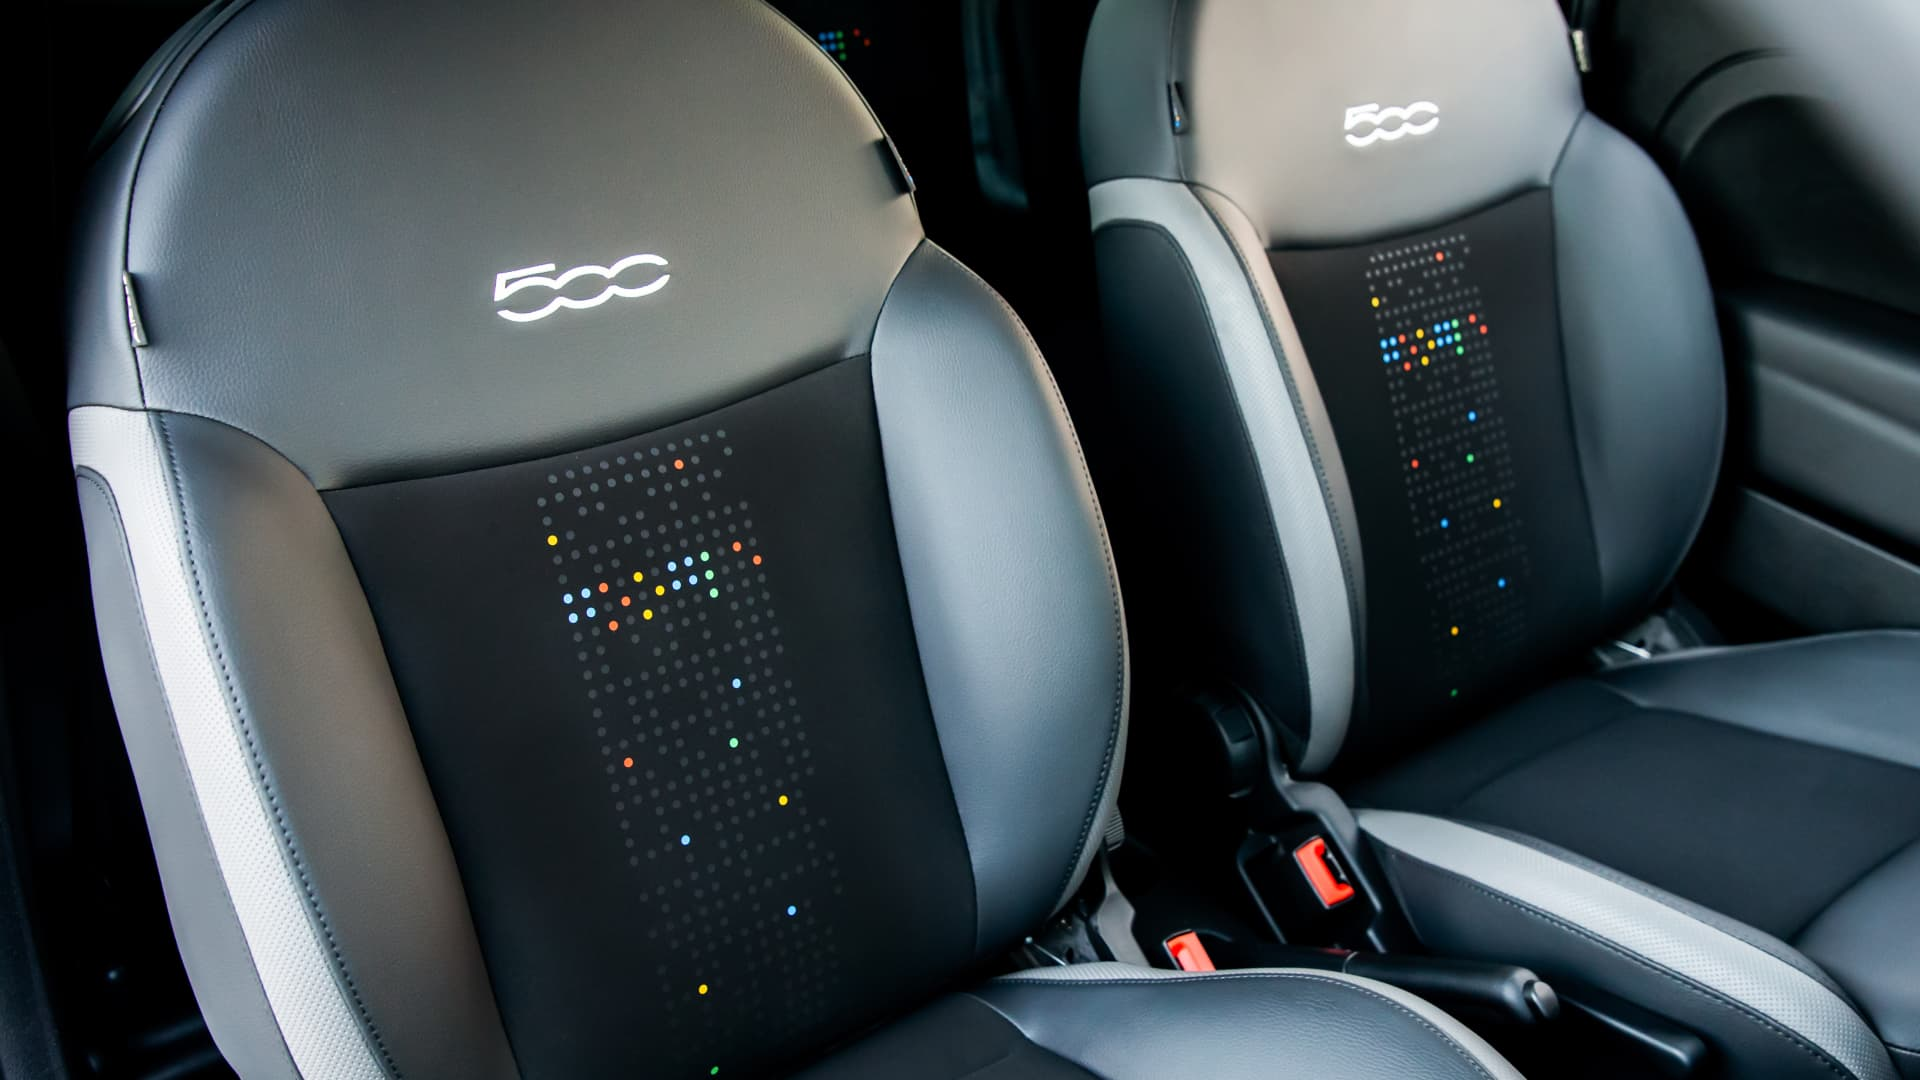 The Fiat 'Hey Google' cars feature upholstery with designs inspired by Google's brand colors.